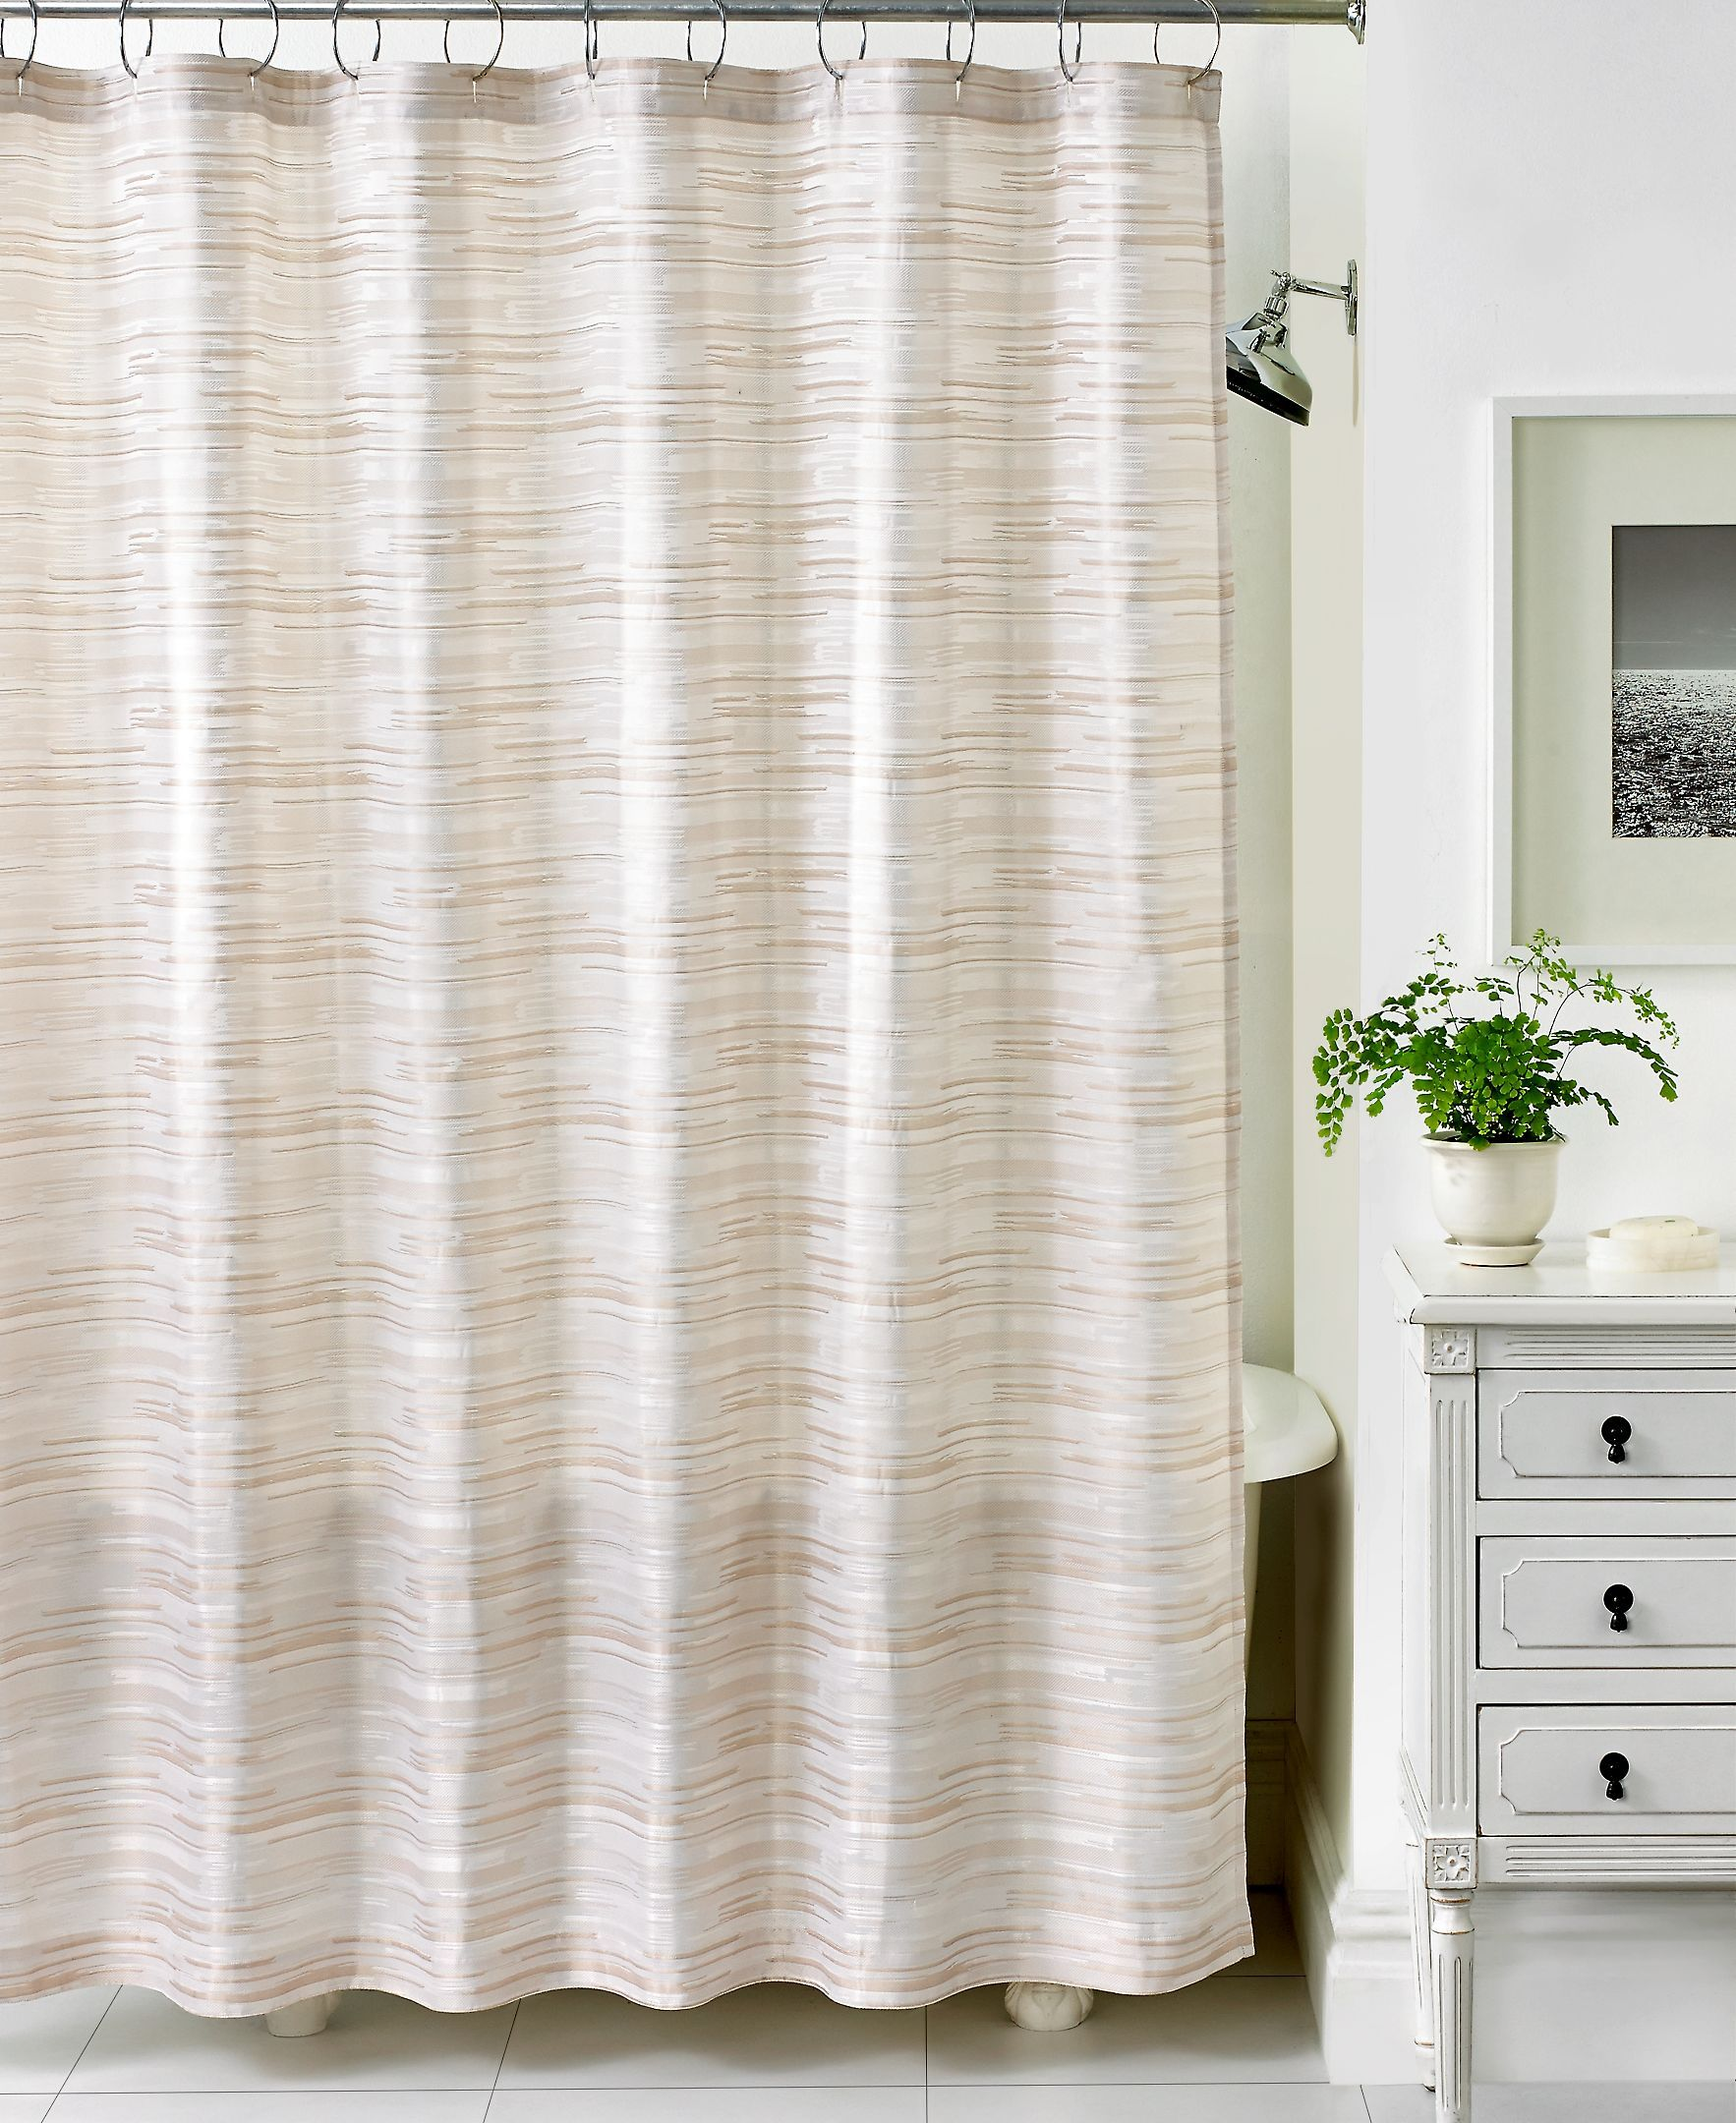 Buy Shower Curtains Online Martha Stewart Collection Segment Stripe Shower Curtain Products